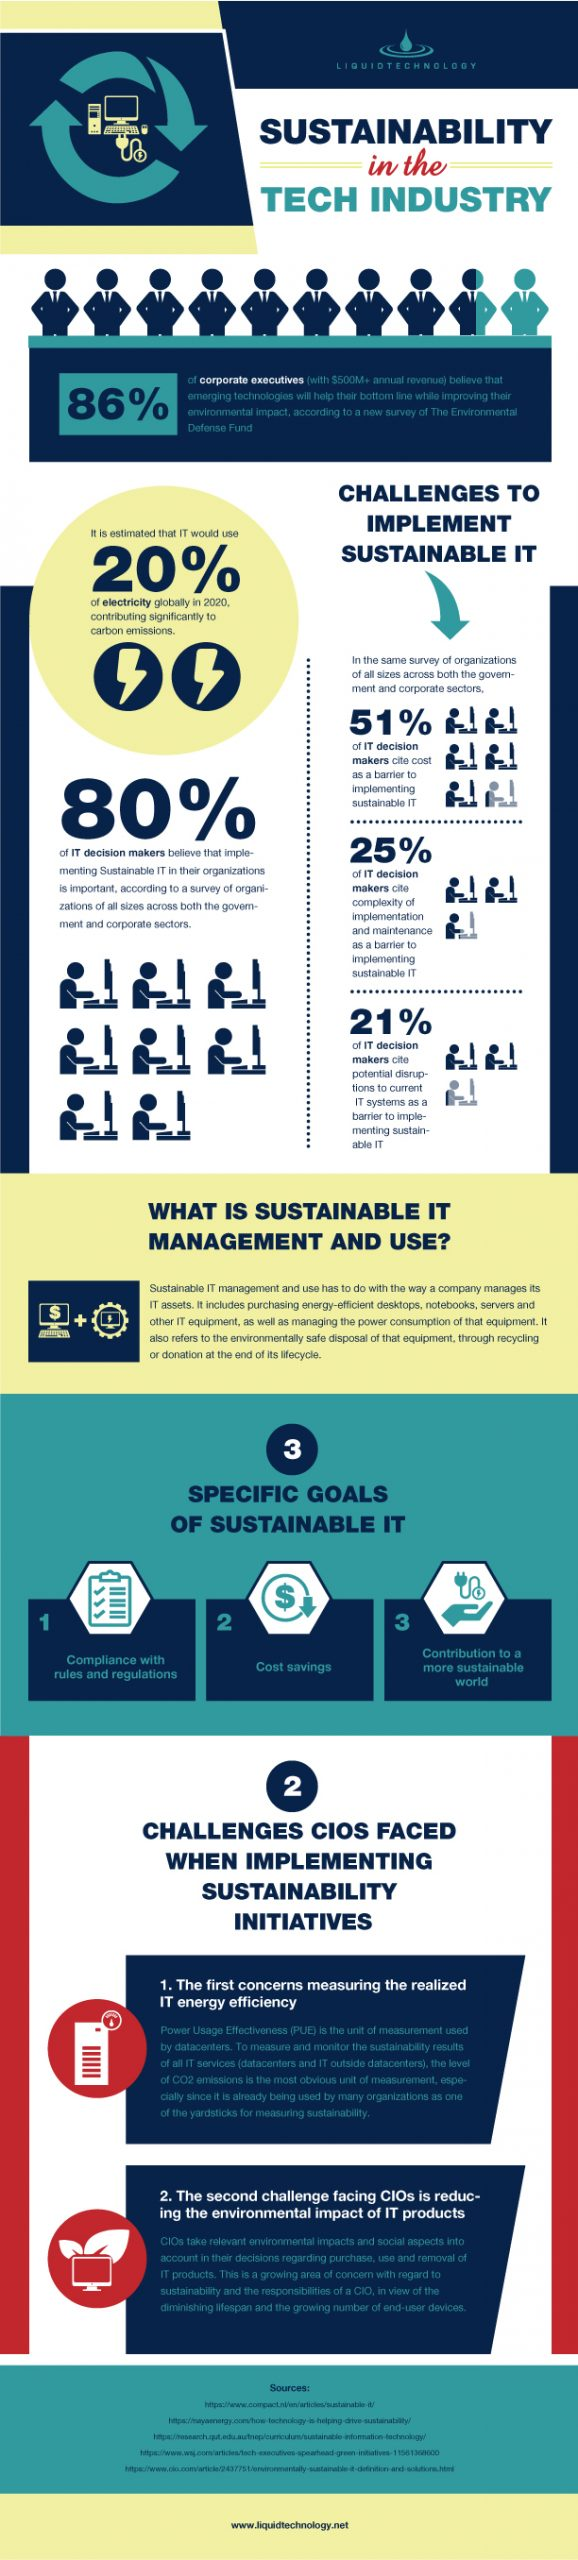 Sustainability in the Tech Industry